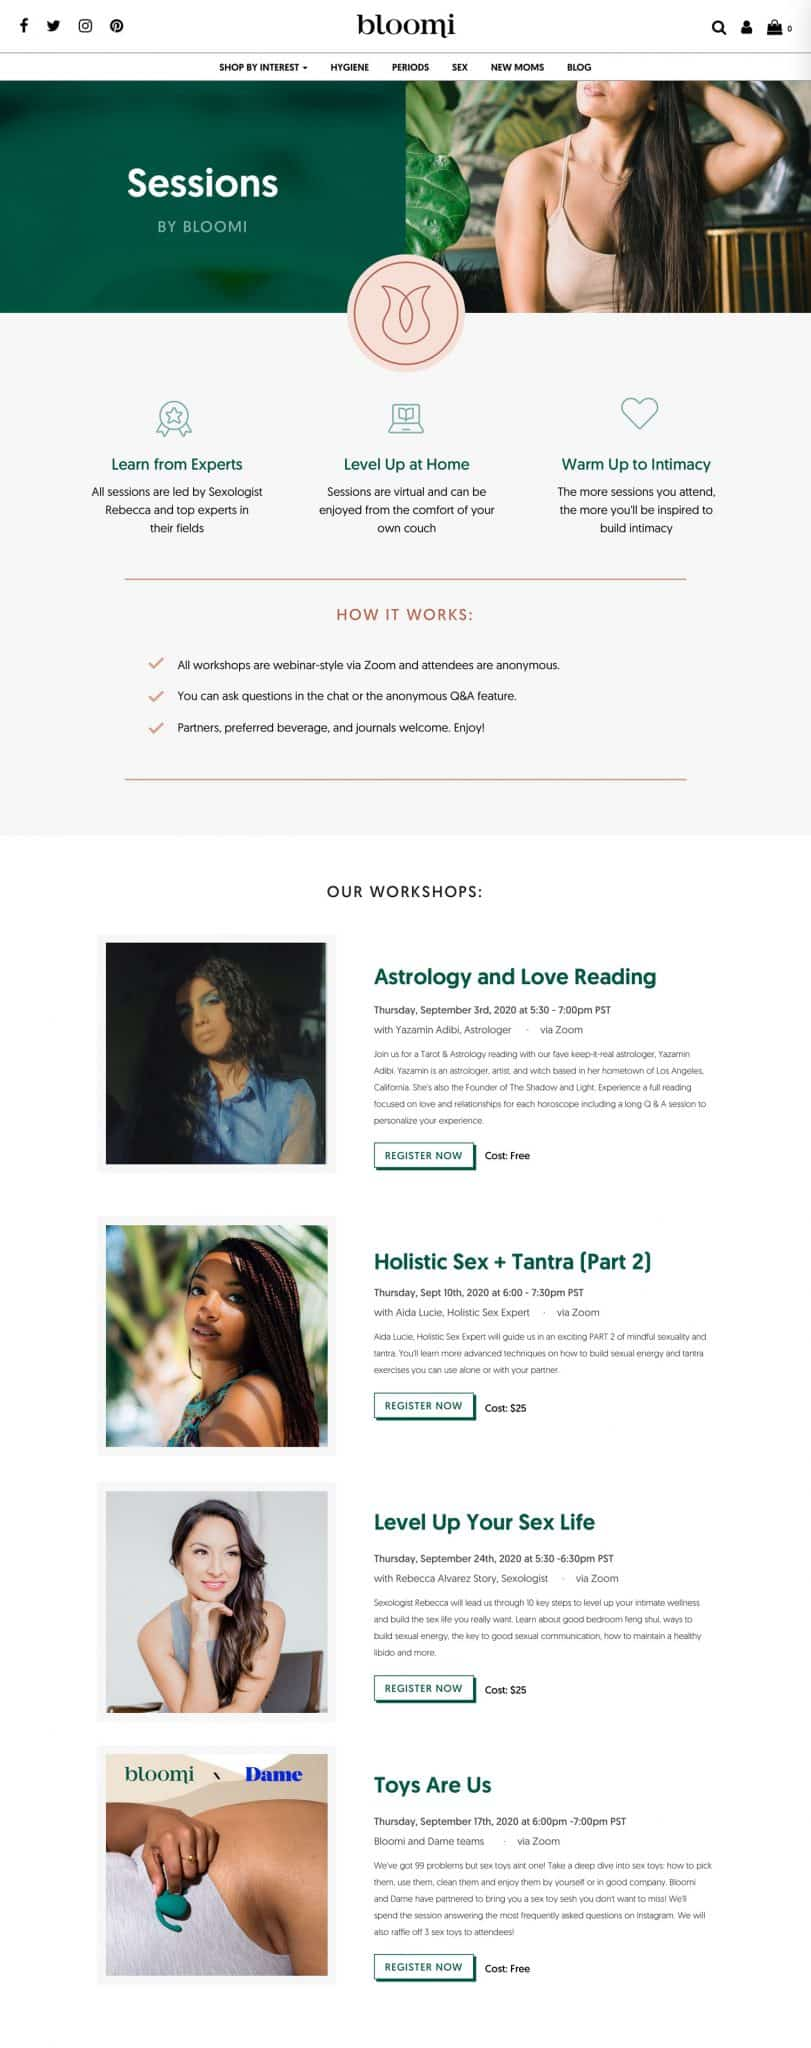 Website page design for upcoming events and webinars